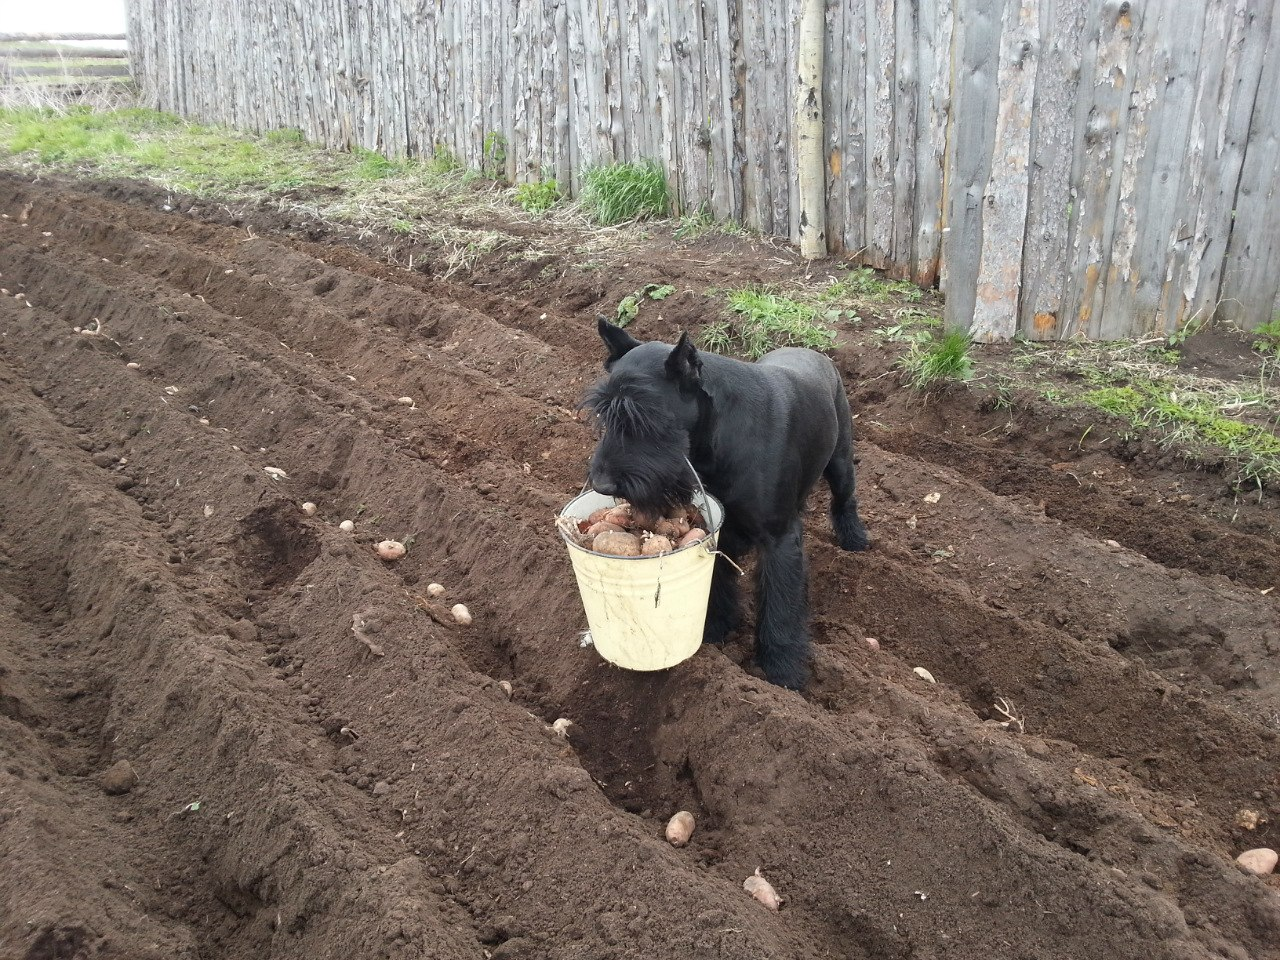 Limon helping to plant potatoes